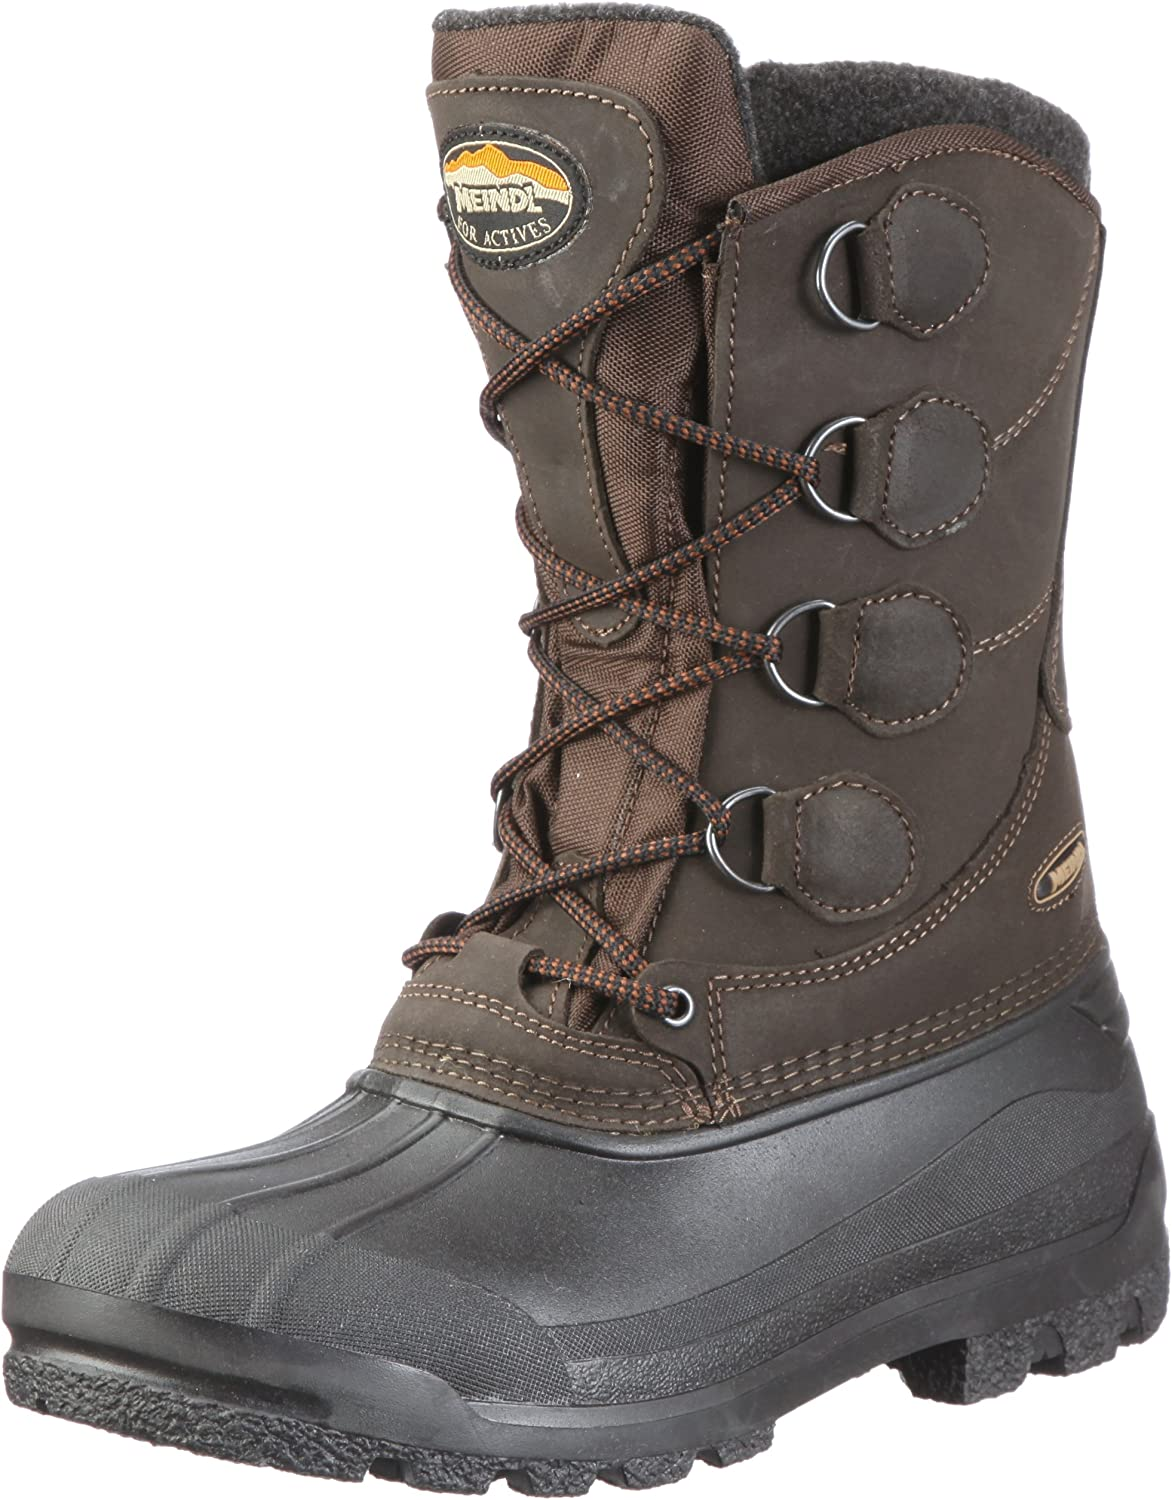 Meindl Men's Brown High Rise Hiking shoes